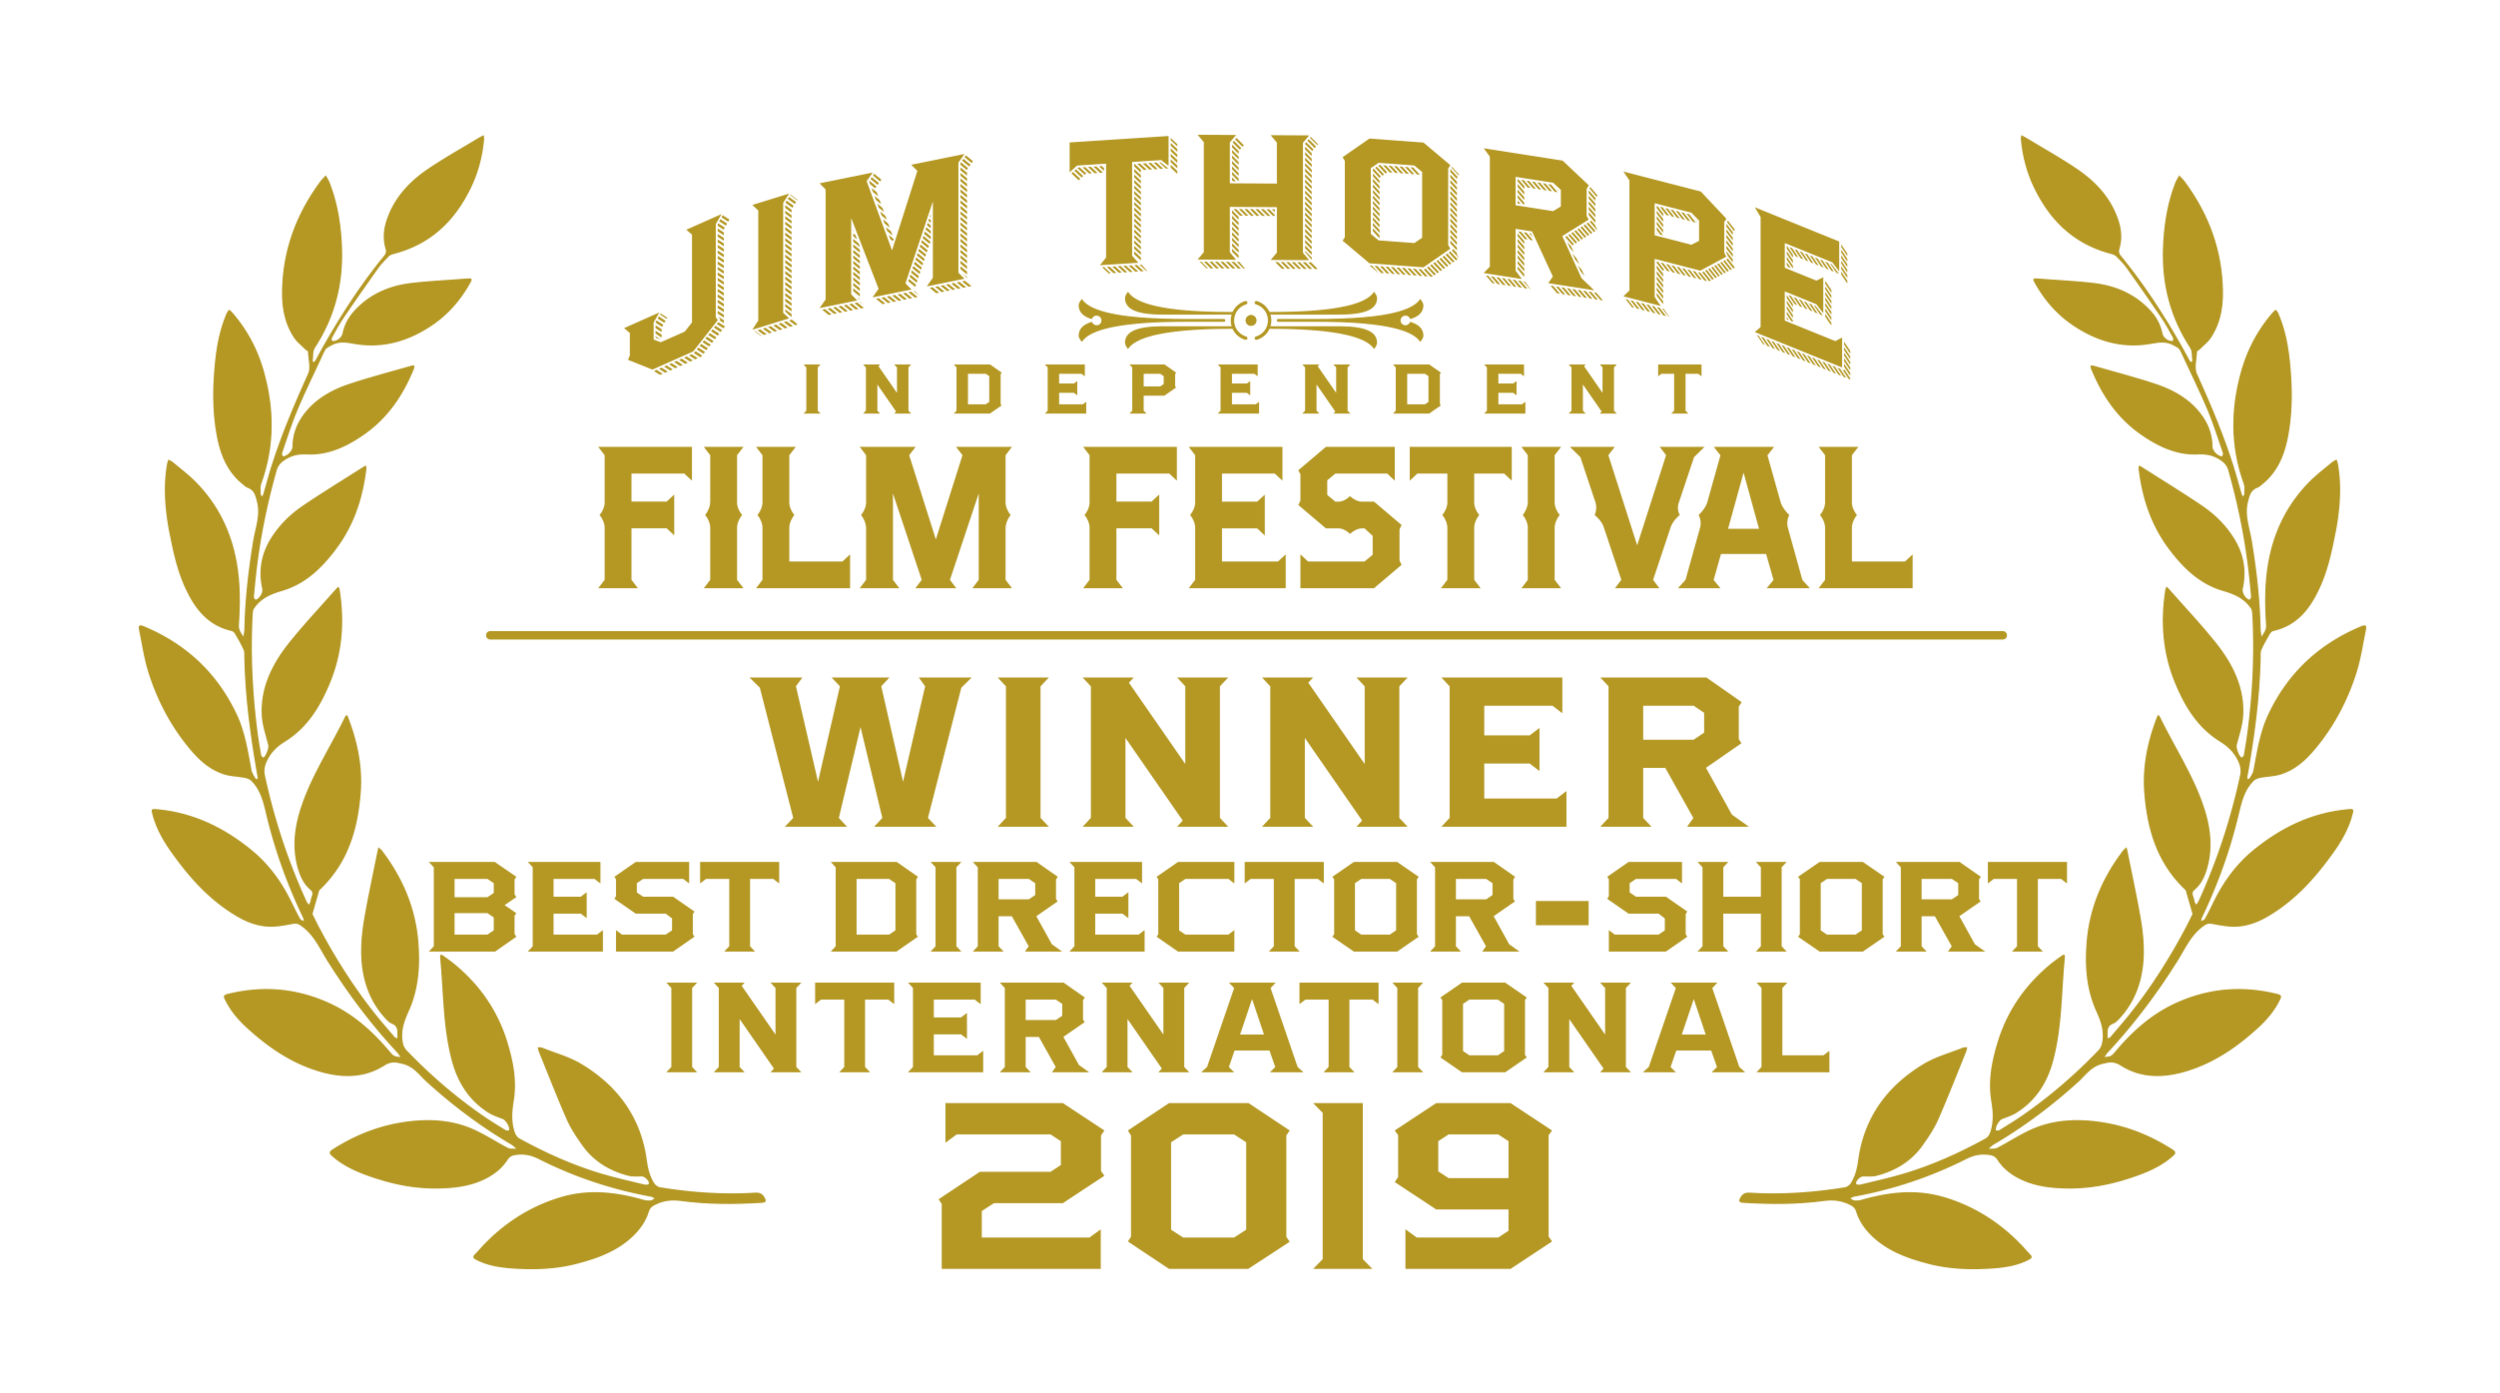 WINNER-BestDirector-Short-Intl-gold copy.png